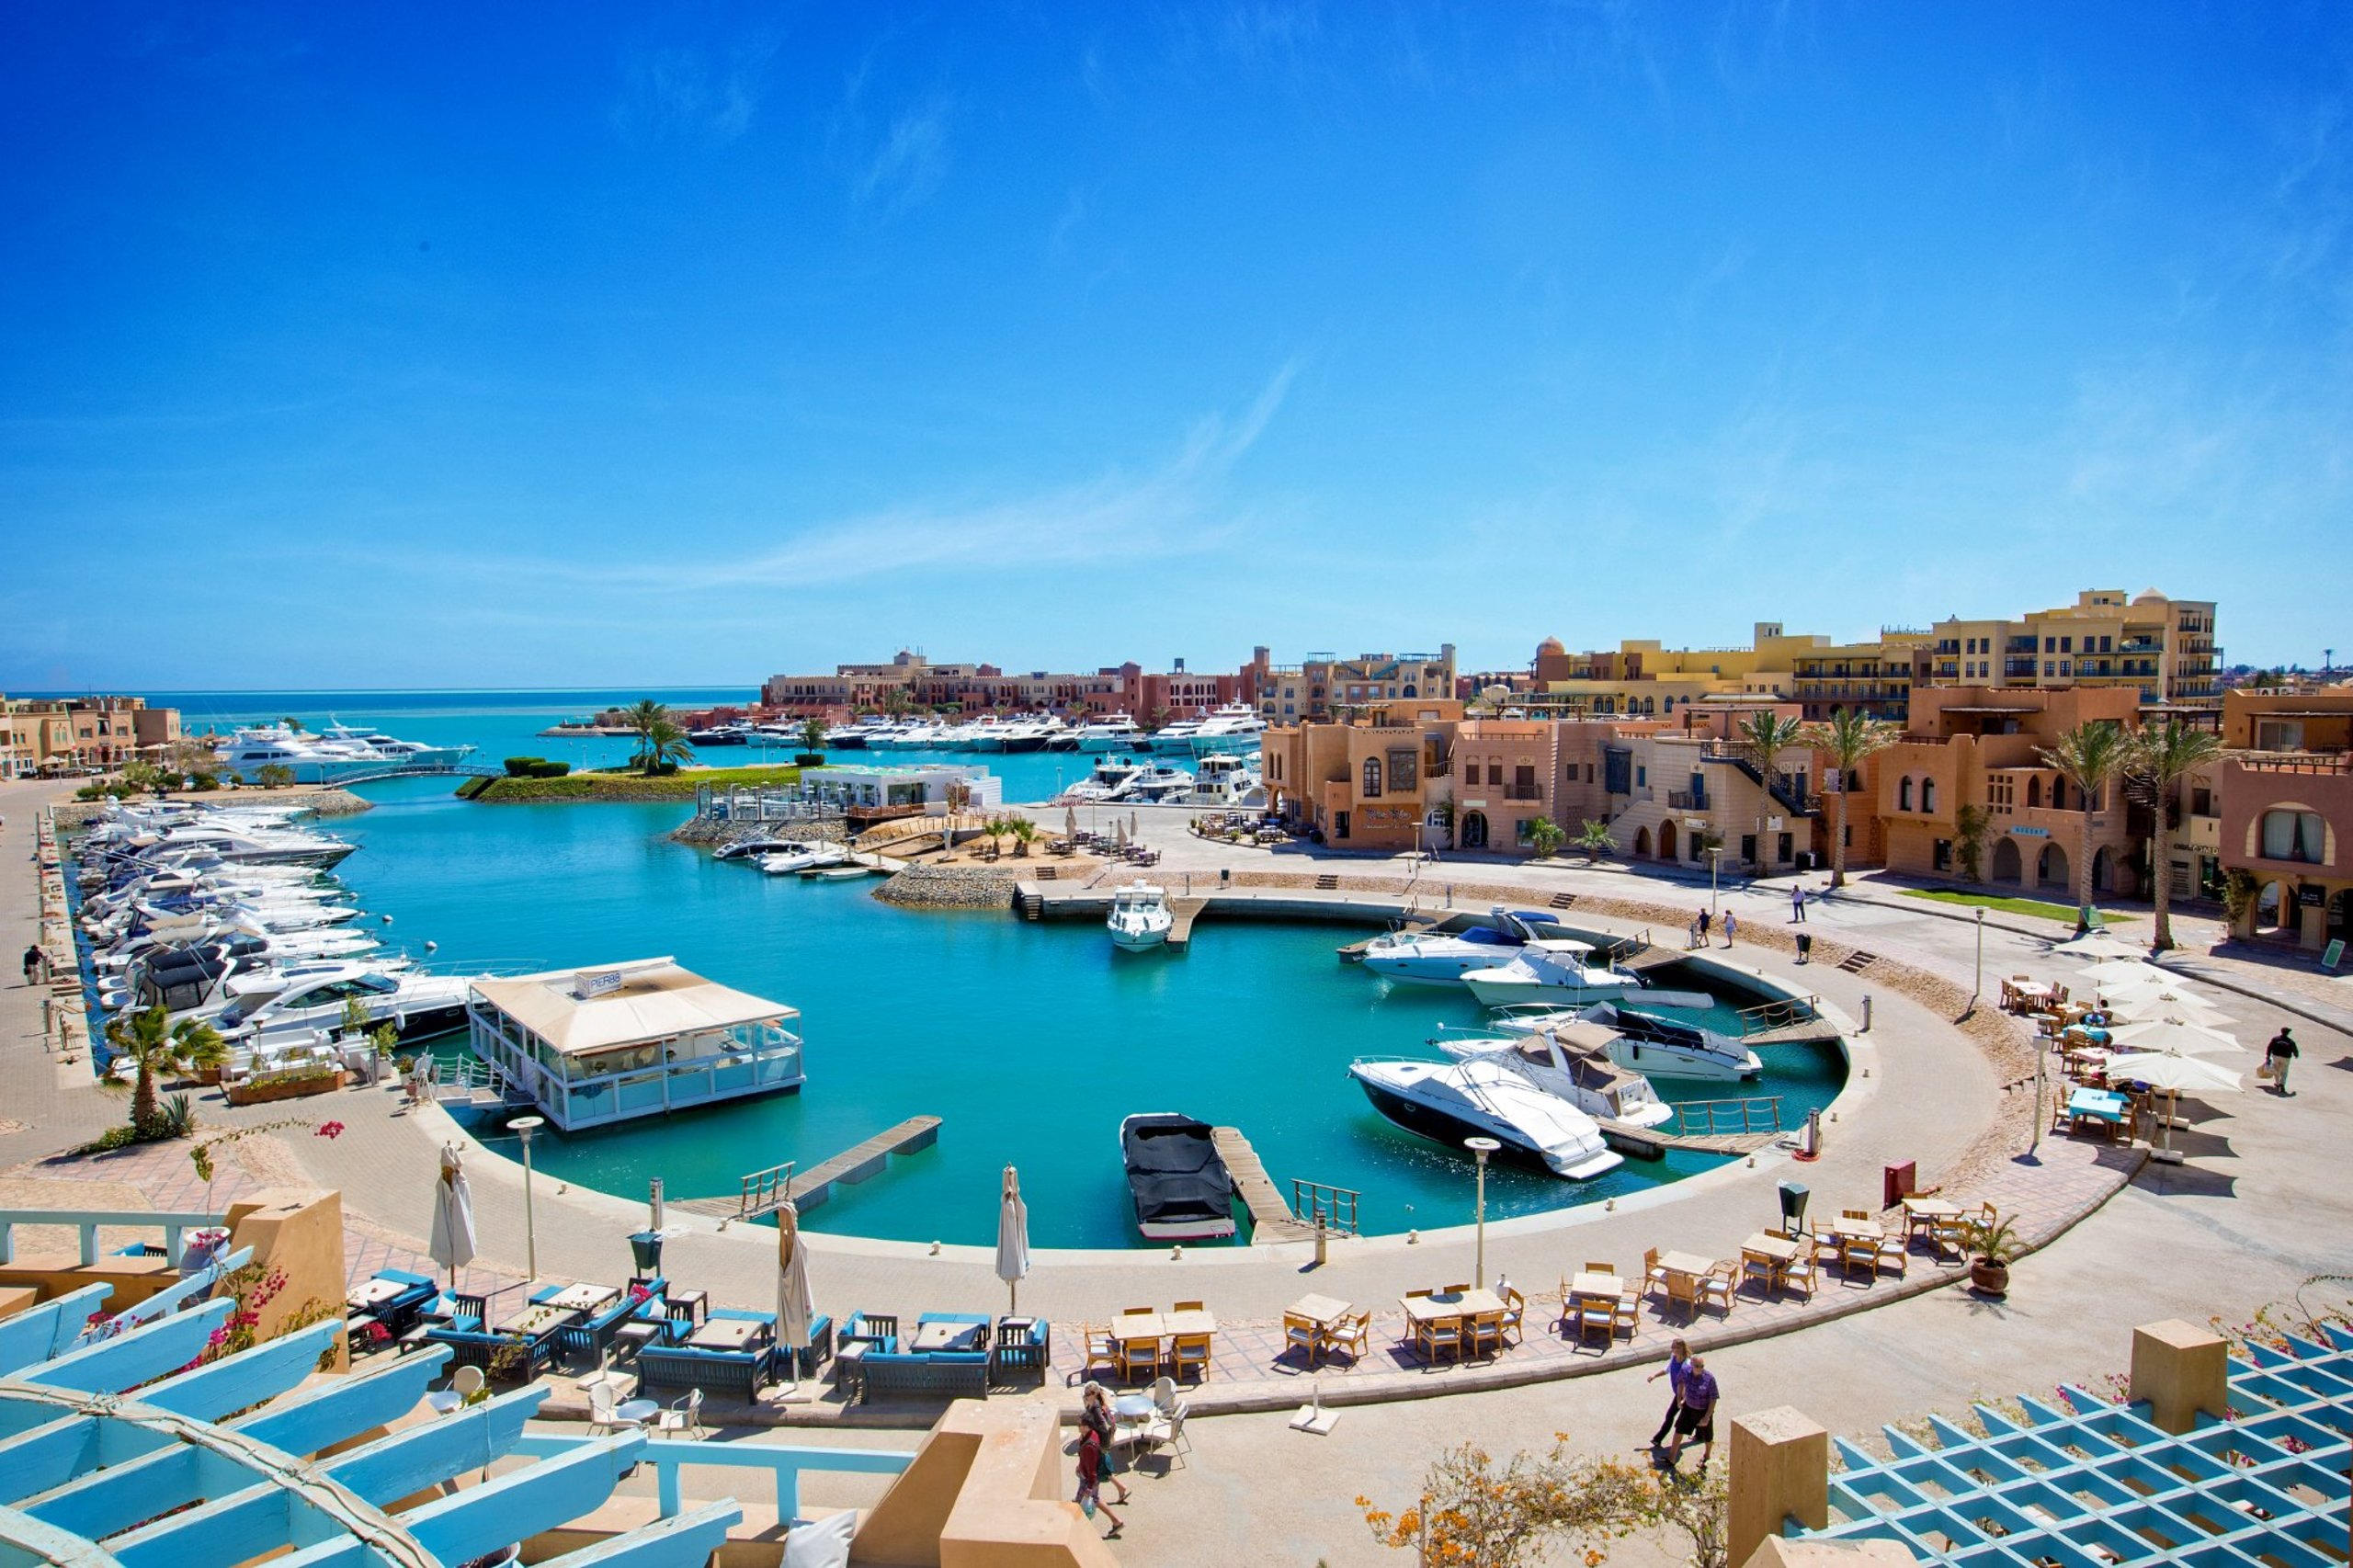 El Gouna 2020: Best of El Gouna, Egypt Tourism - Tripadvisor